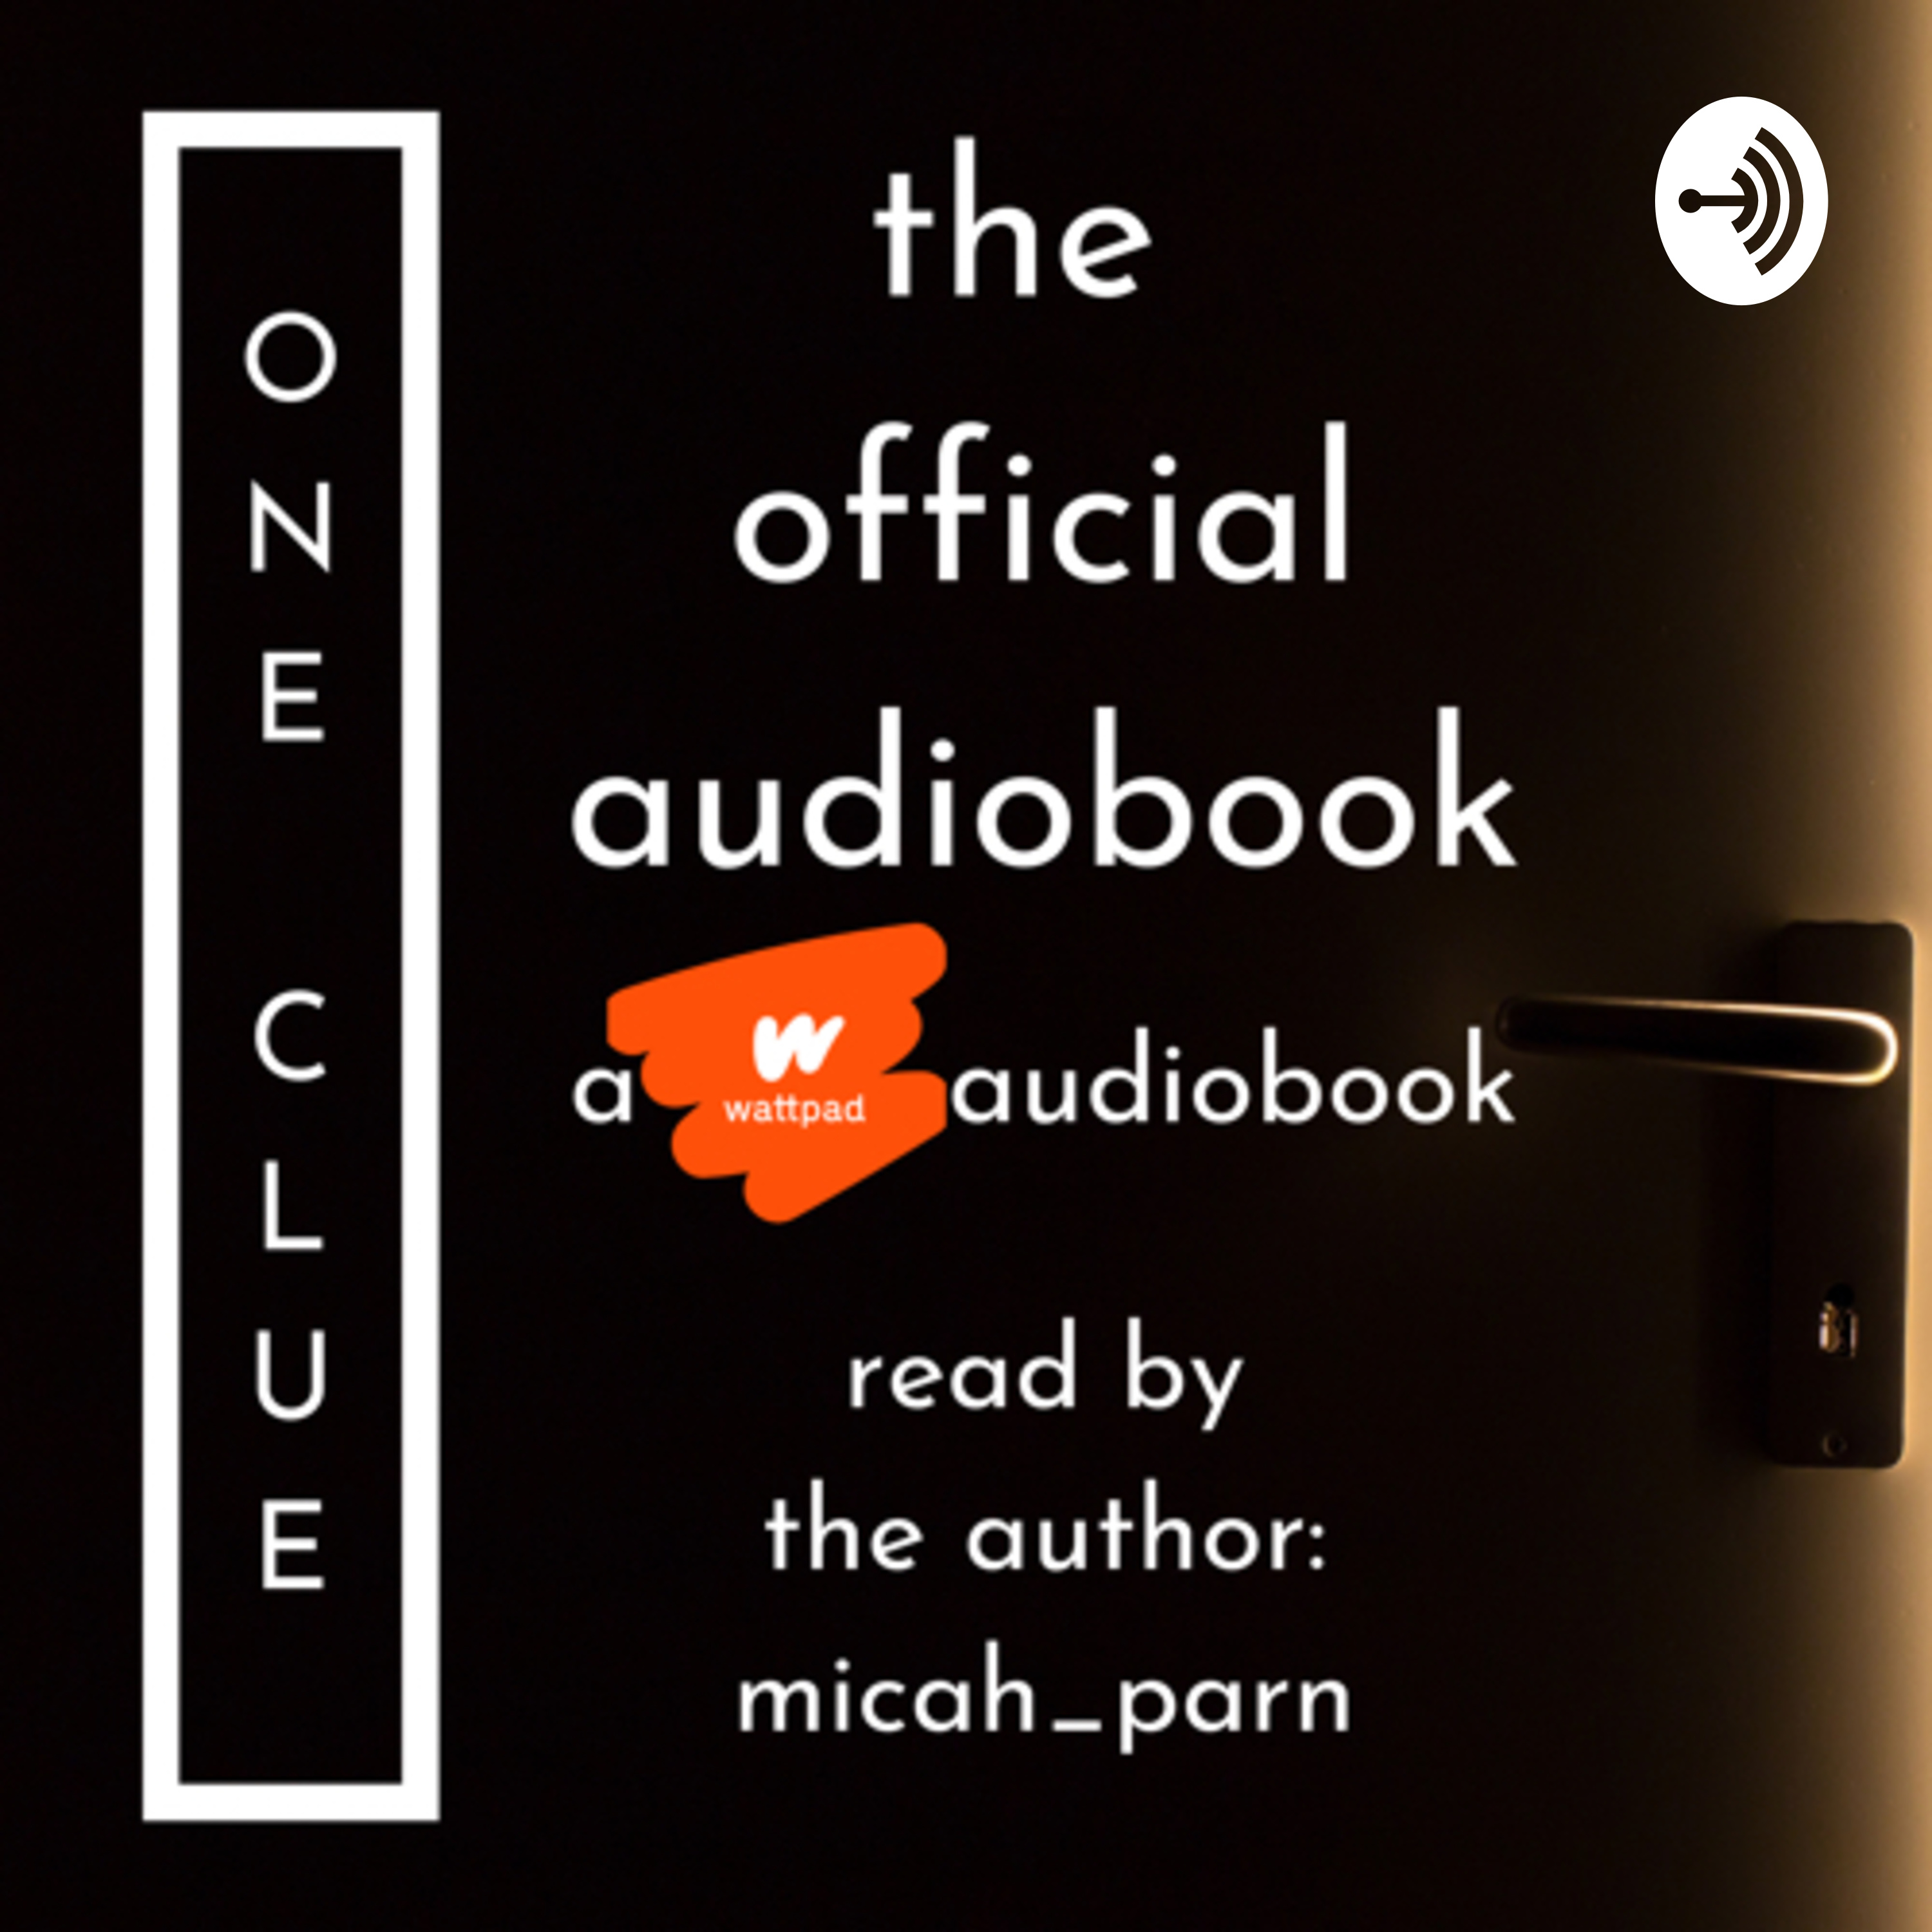 One Clue: The Official Audiobook (Trailer)